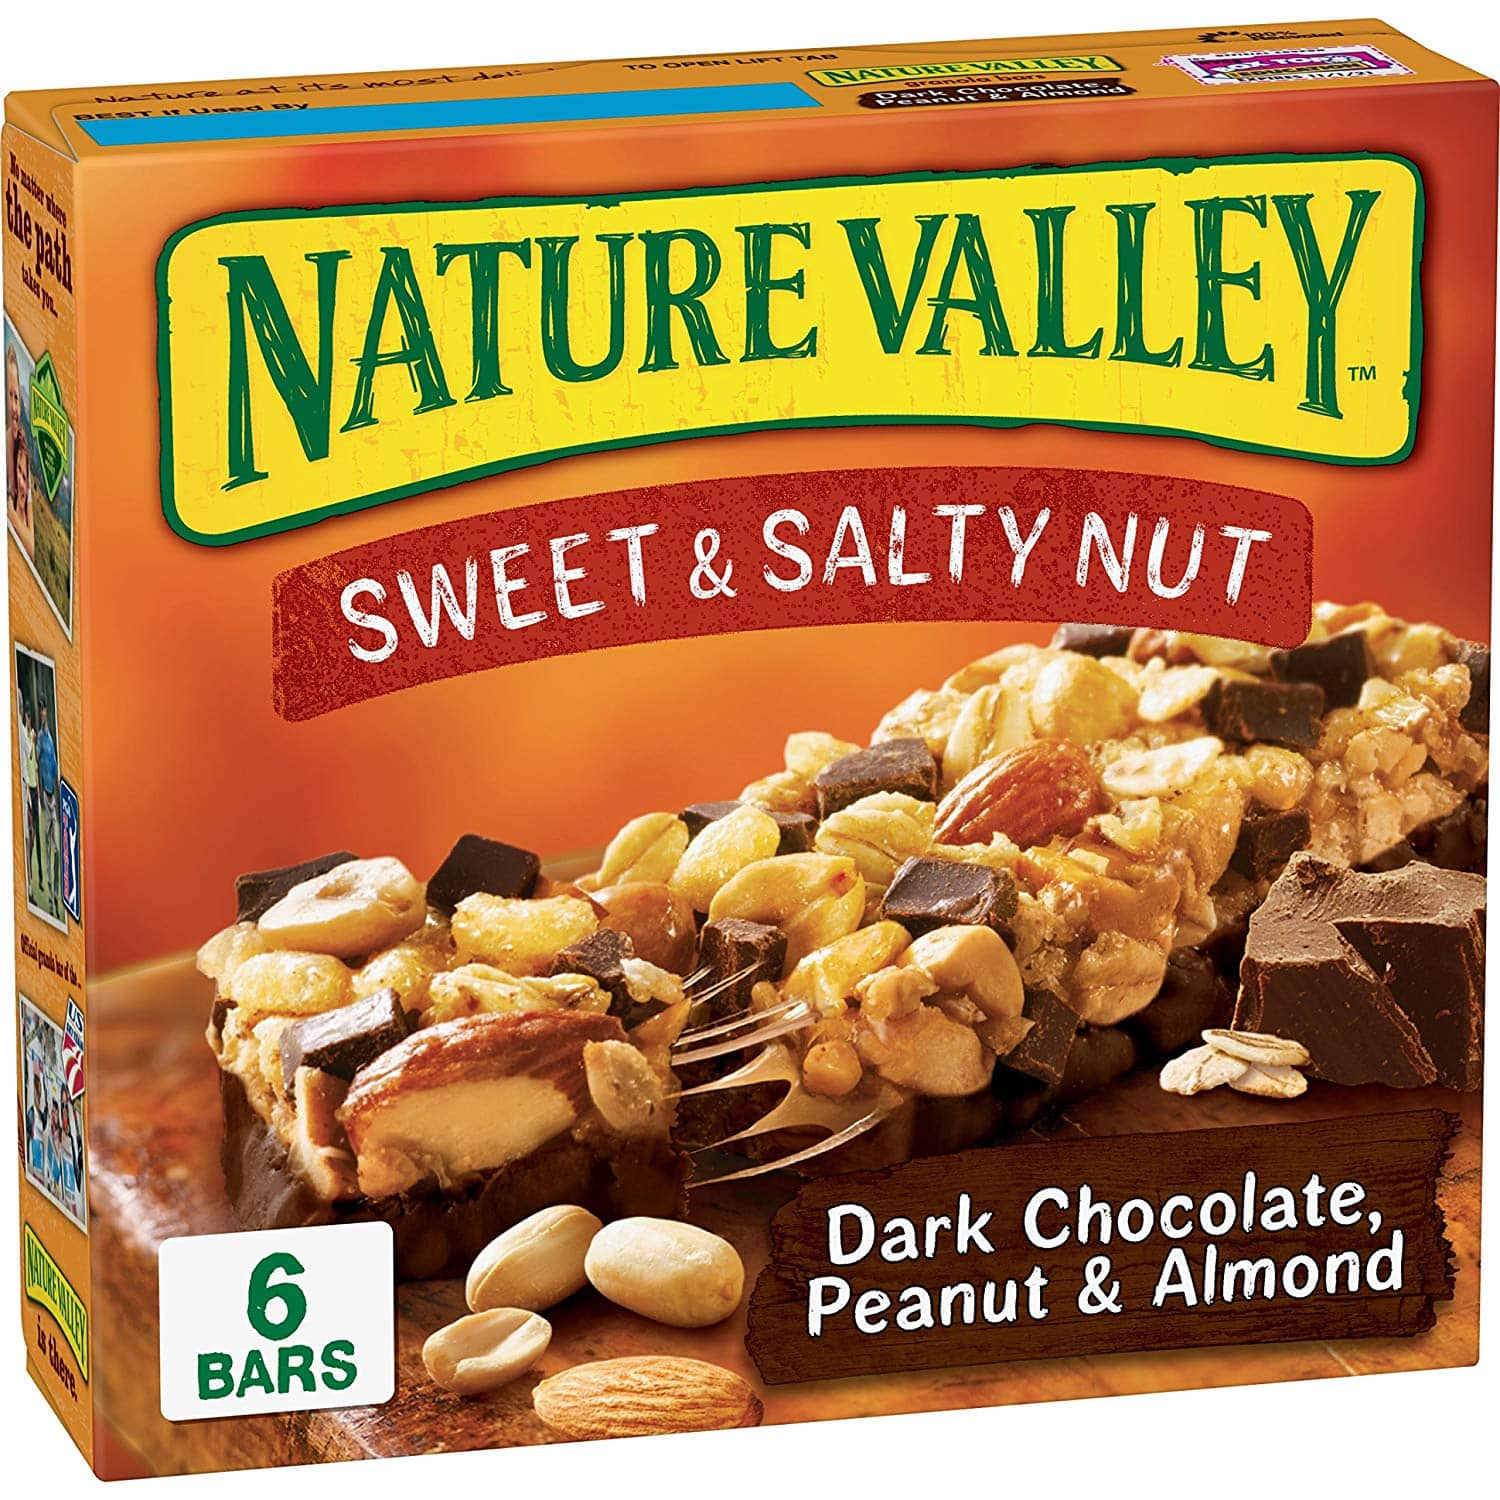 Nature Valley Granola Bars, Sweet and Salty Nut, Dark Chocolate Peanut & Almond, 7.4 Ounce Pack of 1 (6 bars) $1.88